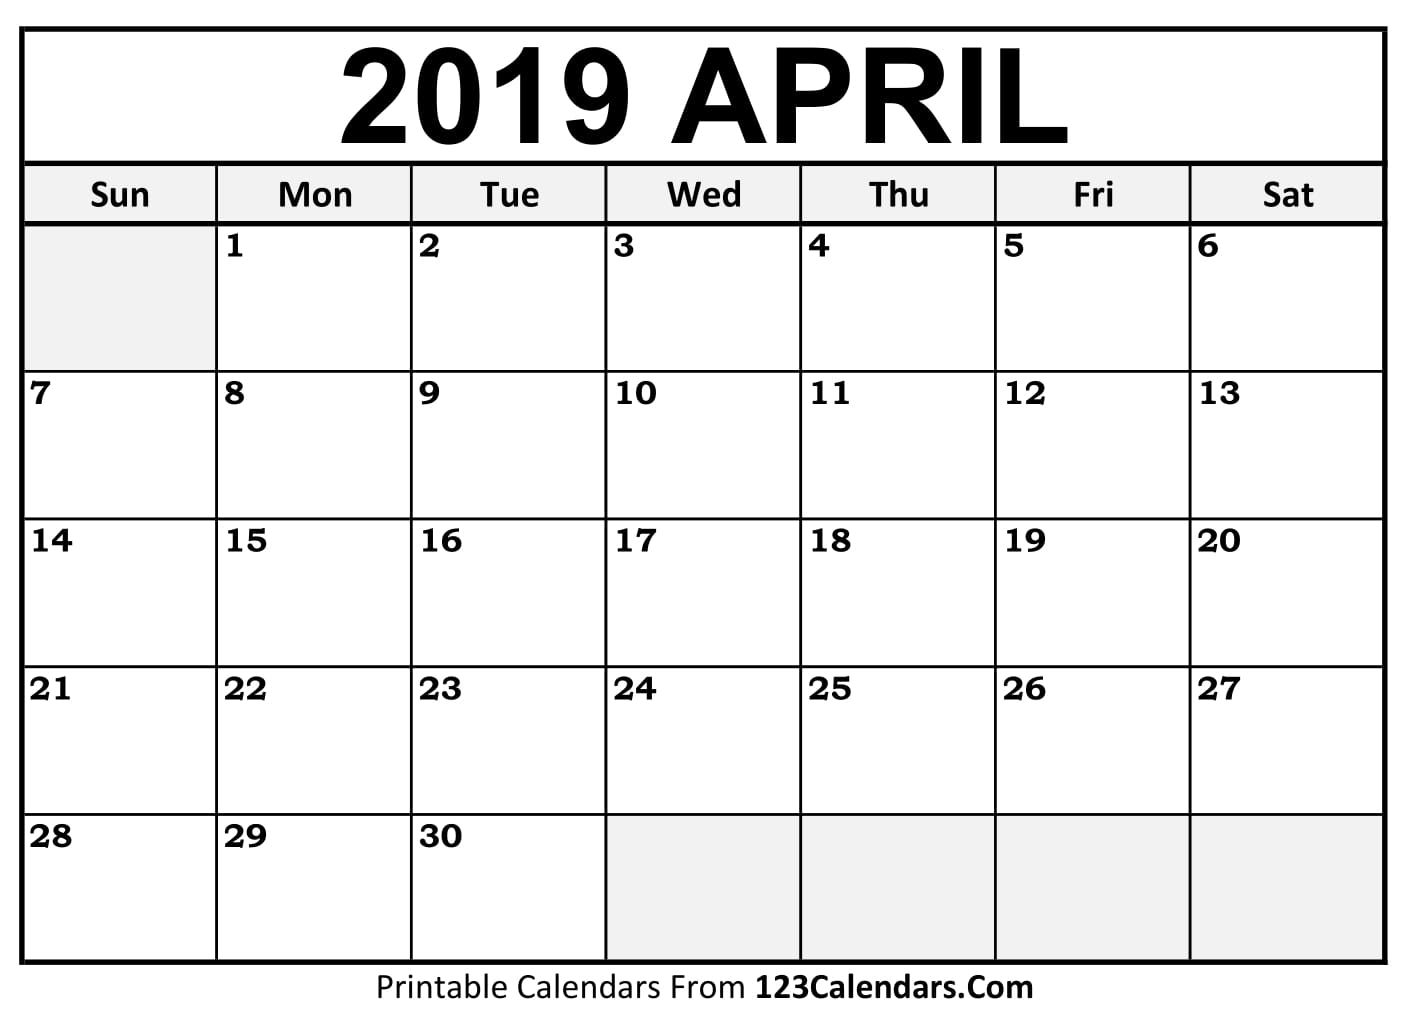 Calendar Craze April : Free april calendar printable template source